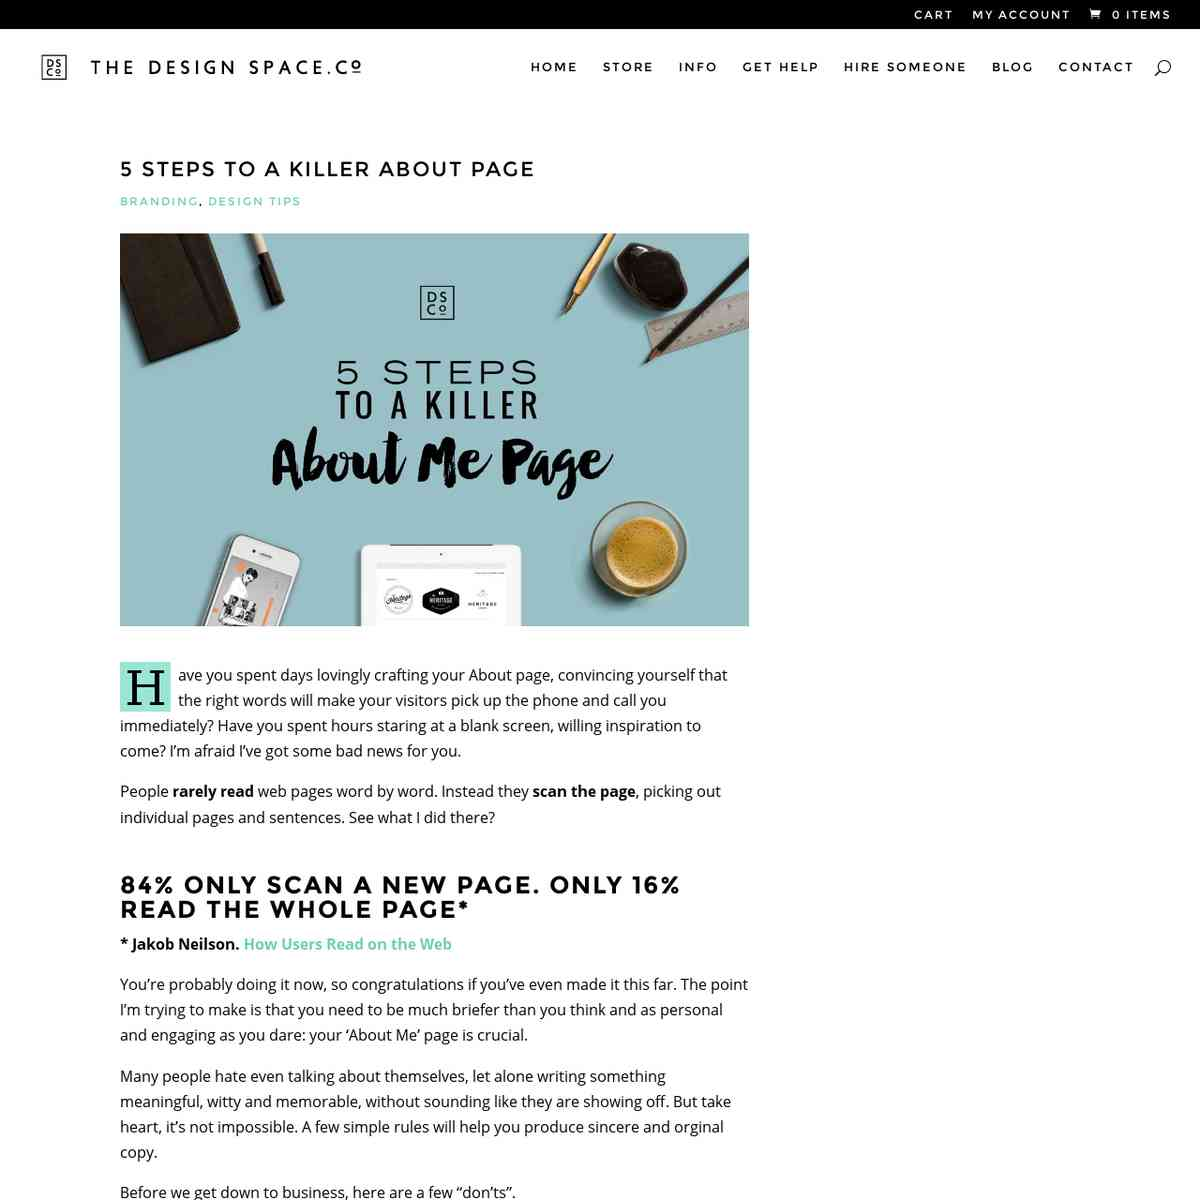 5 STEPS TO A KILLER ABOUT PAGE - THE DESIGN SPACE.co